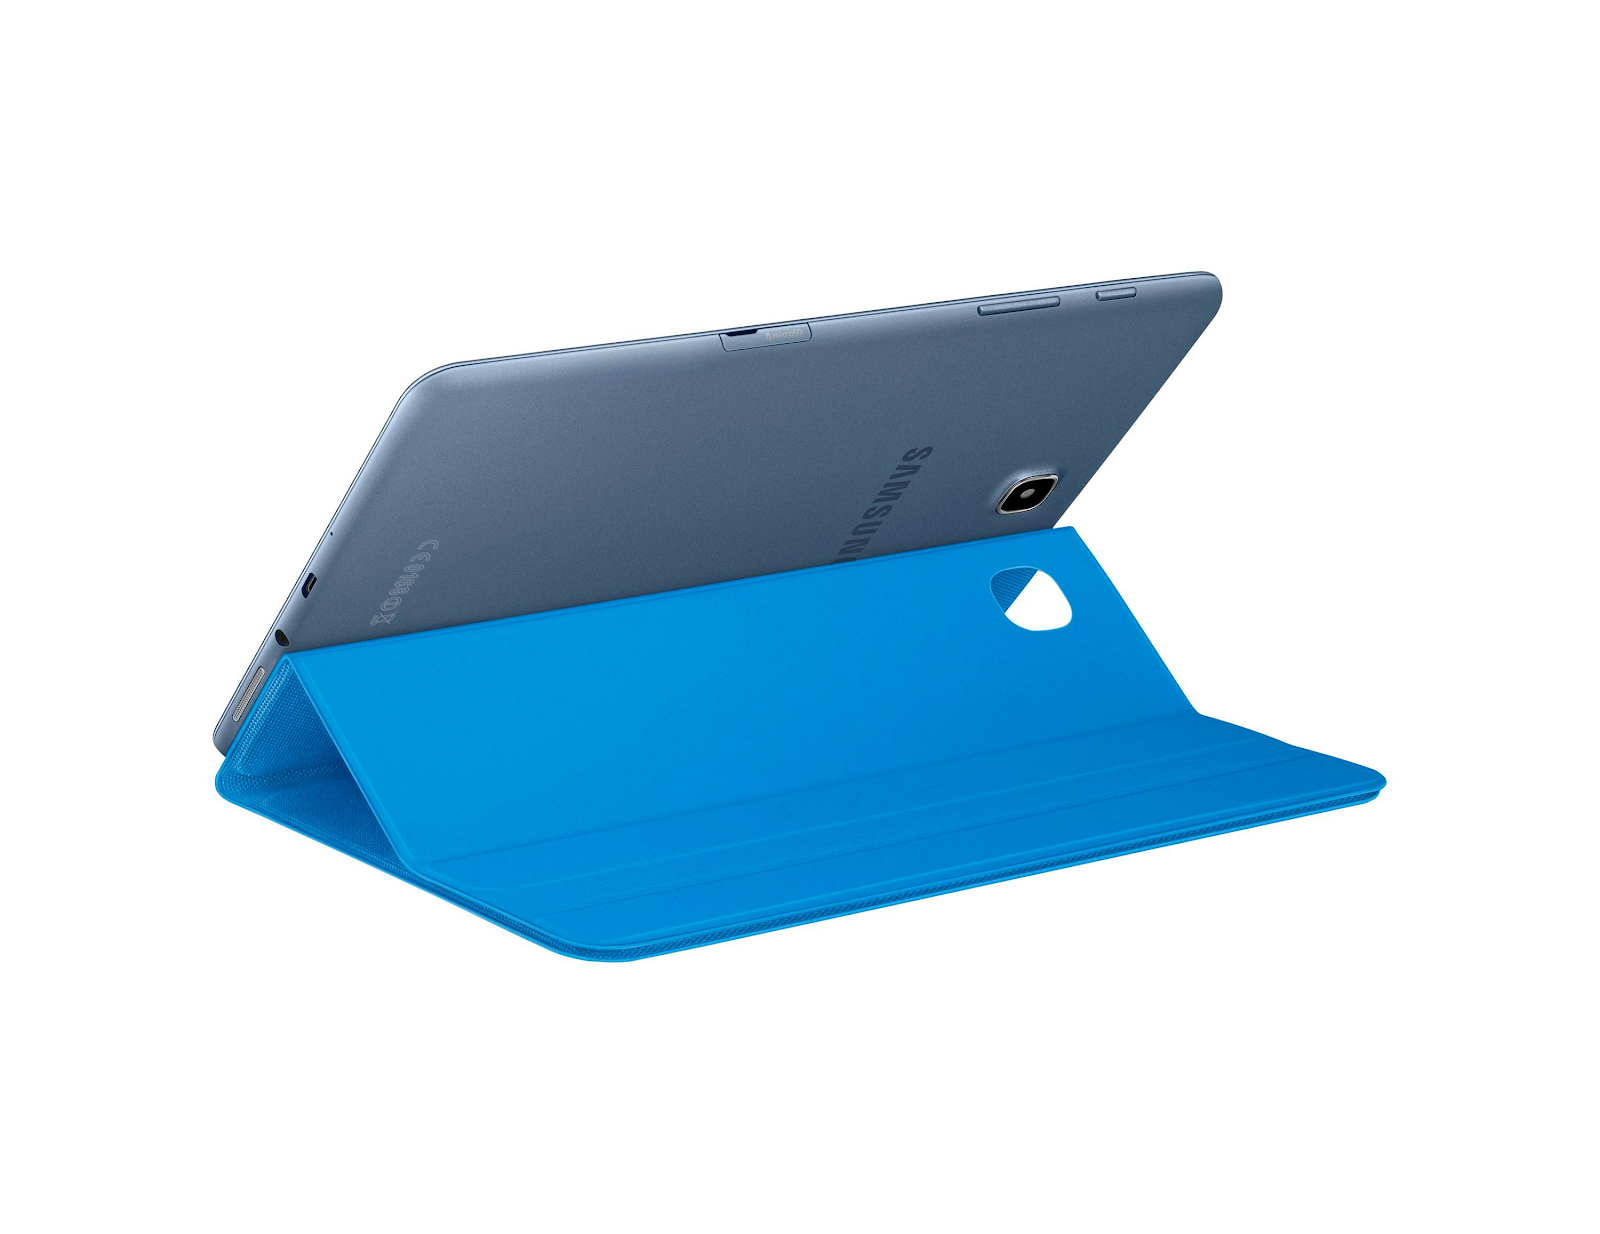 Genuine original samsung galaxy tab 3 8 0 original oem - New Genuine Samsung Galaxy Tab A 8 Slim Book Cover Case With Angled Viewing Blue Retail Packaging Free Shipping